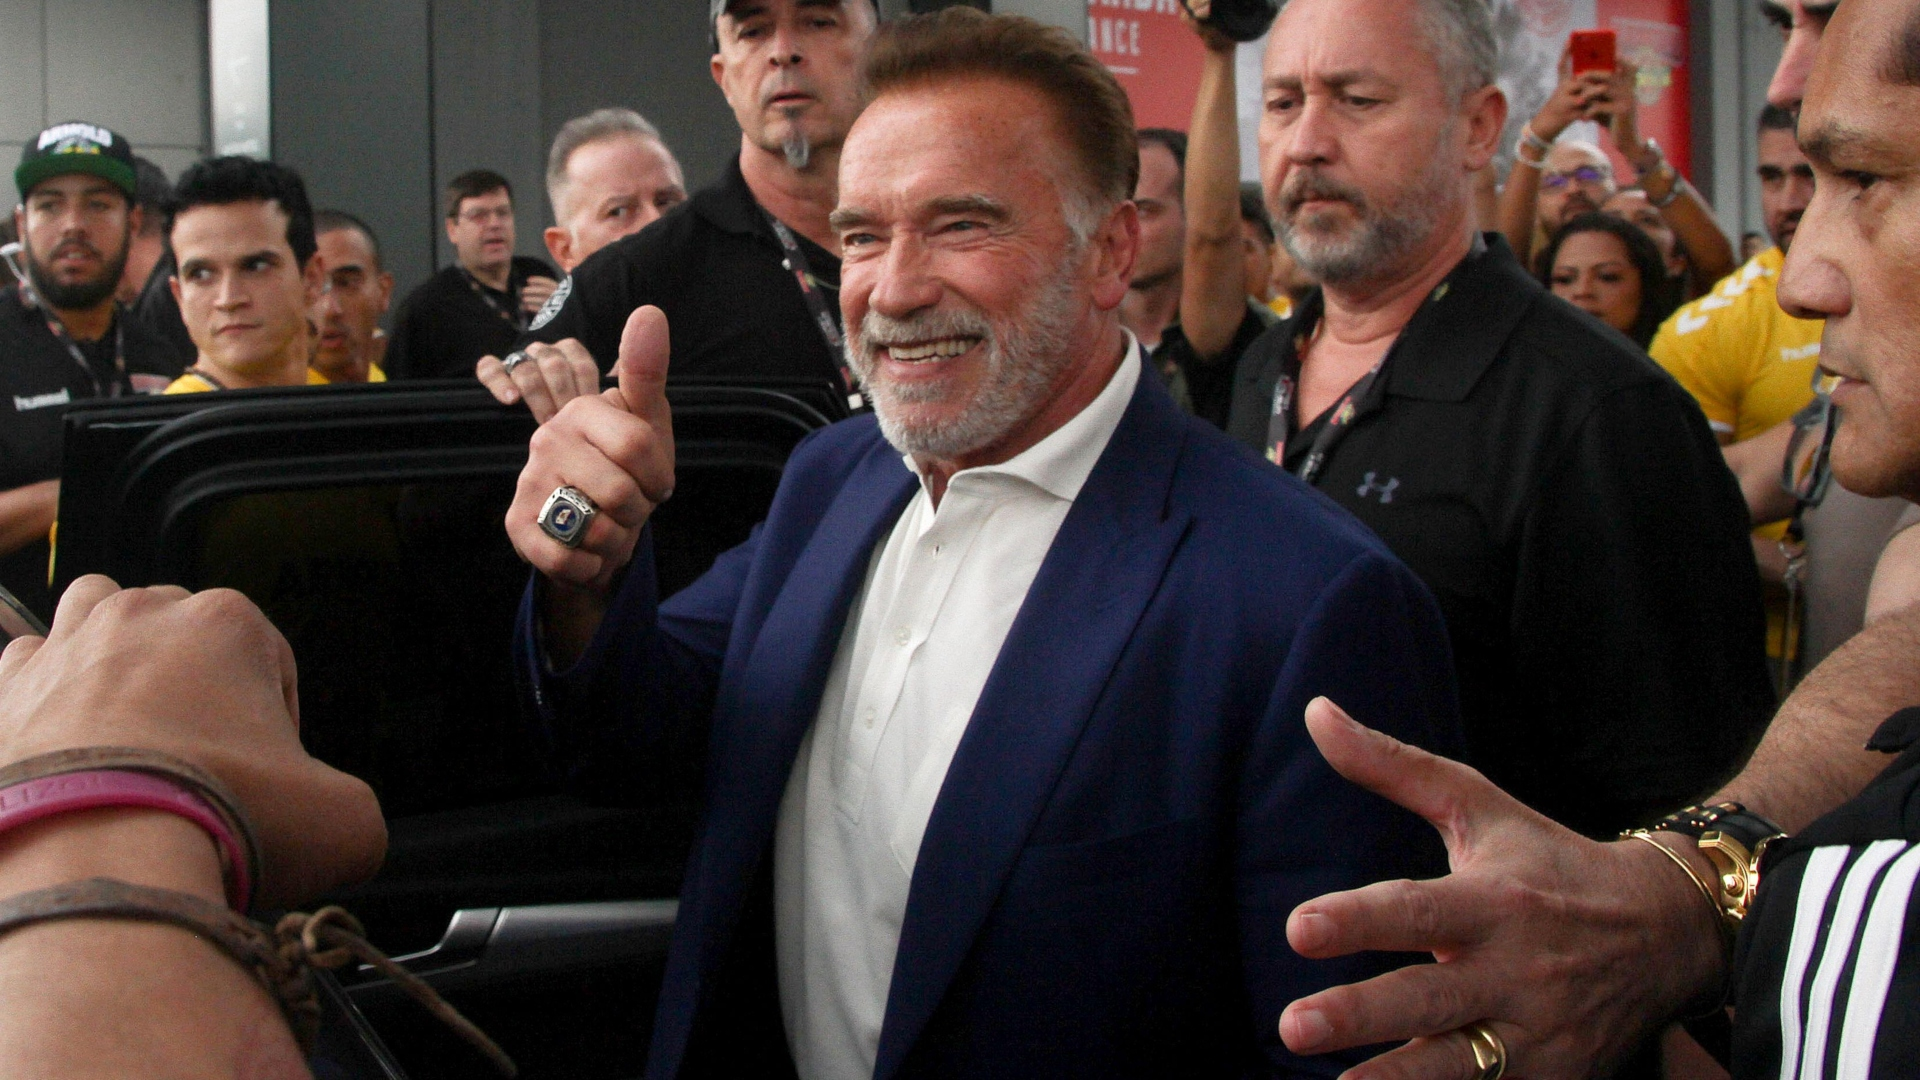 Image result for Images of Arnold Schwarzenegger in Johannesburg South Africa to attend and promote the annual Arnold Classic Africa